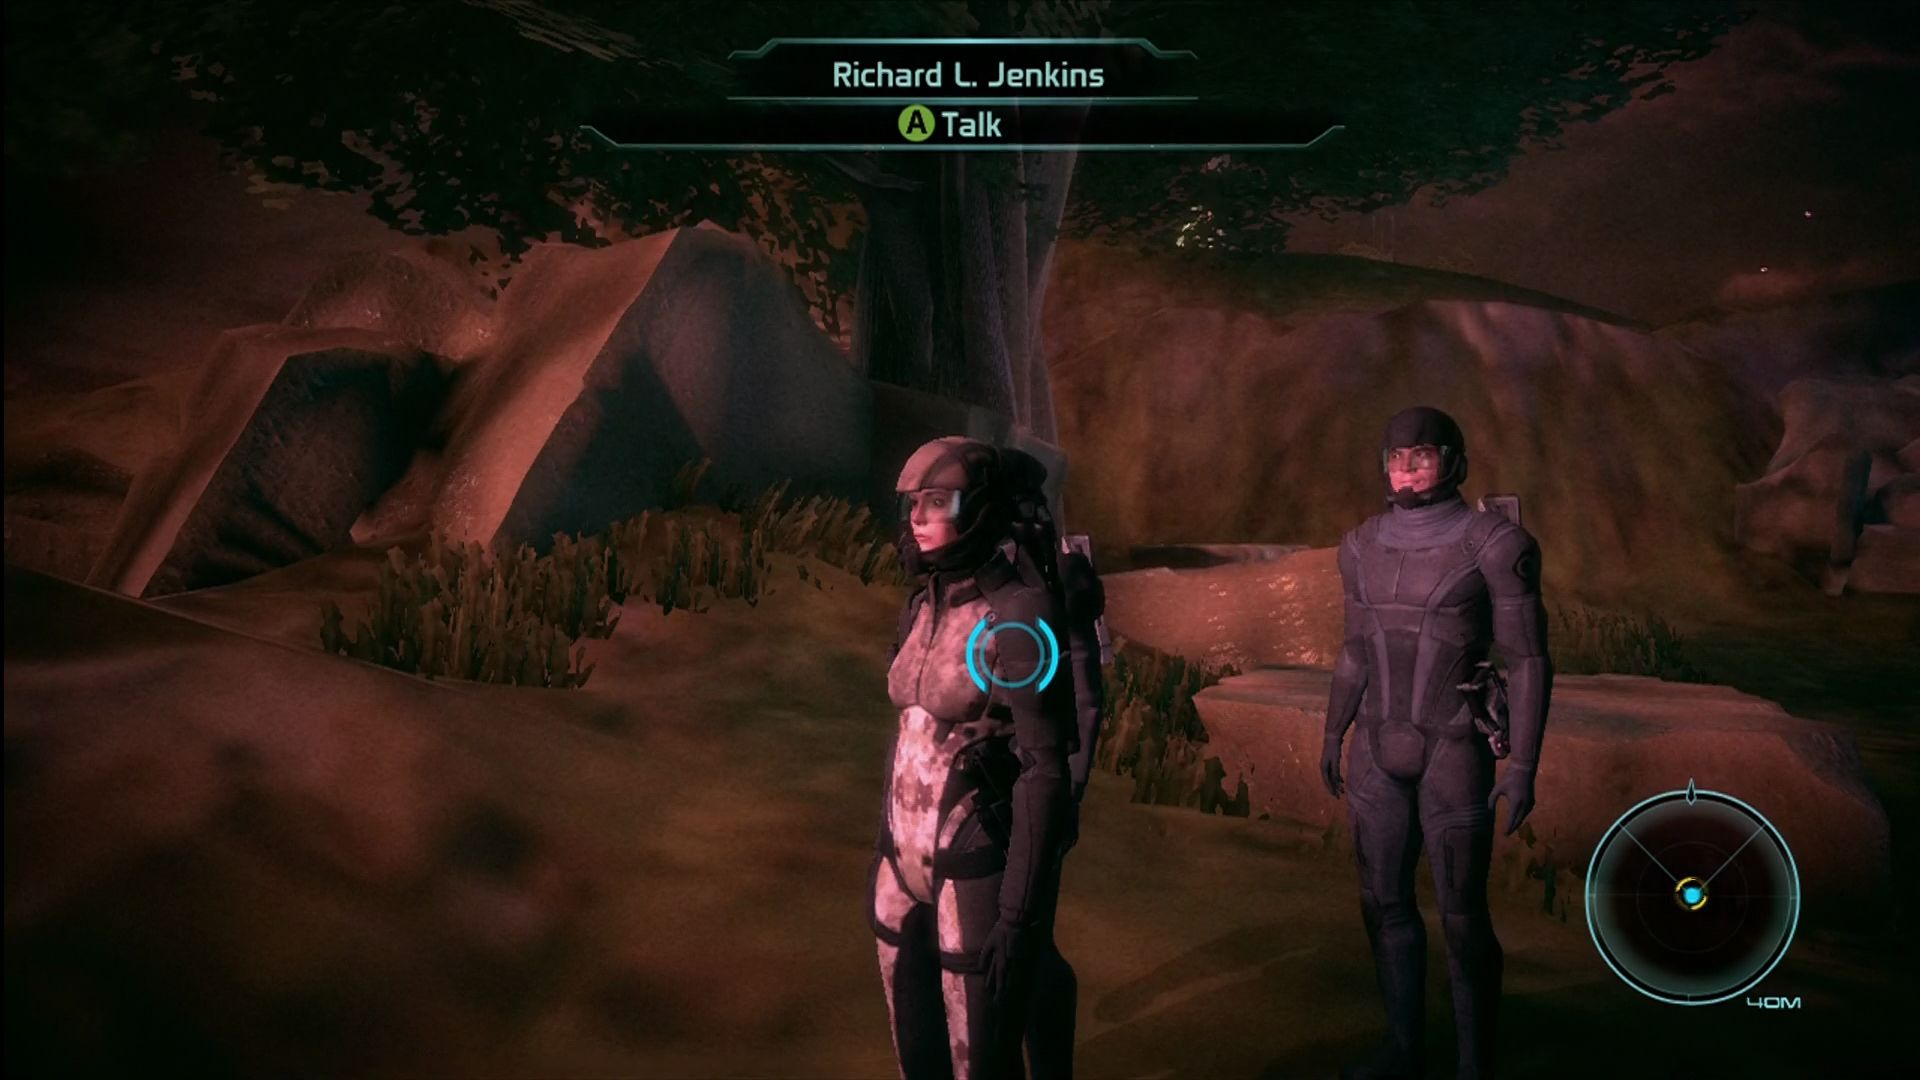 Mass Effect Xbox 360 The Xbox version has noticeable issues with texture draw-in. Here's the scene as it first loads.